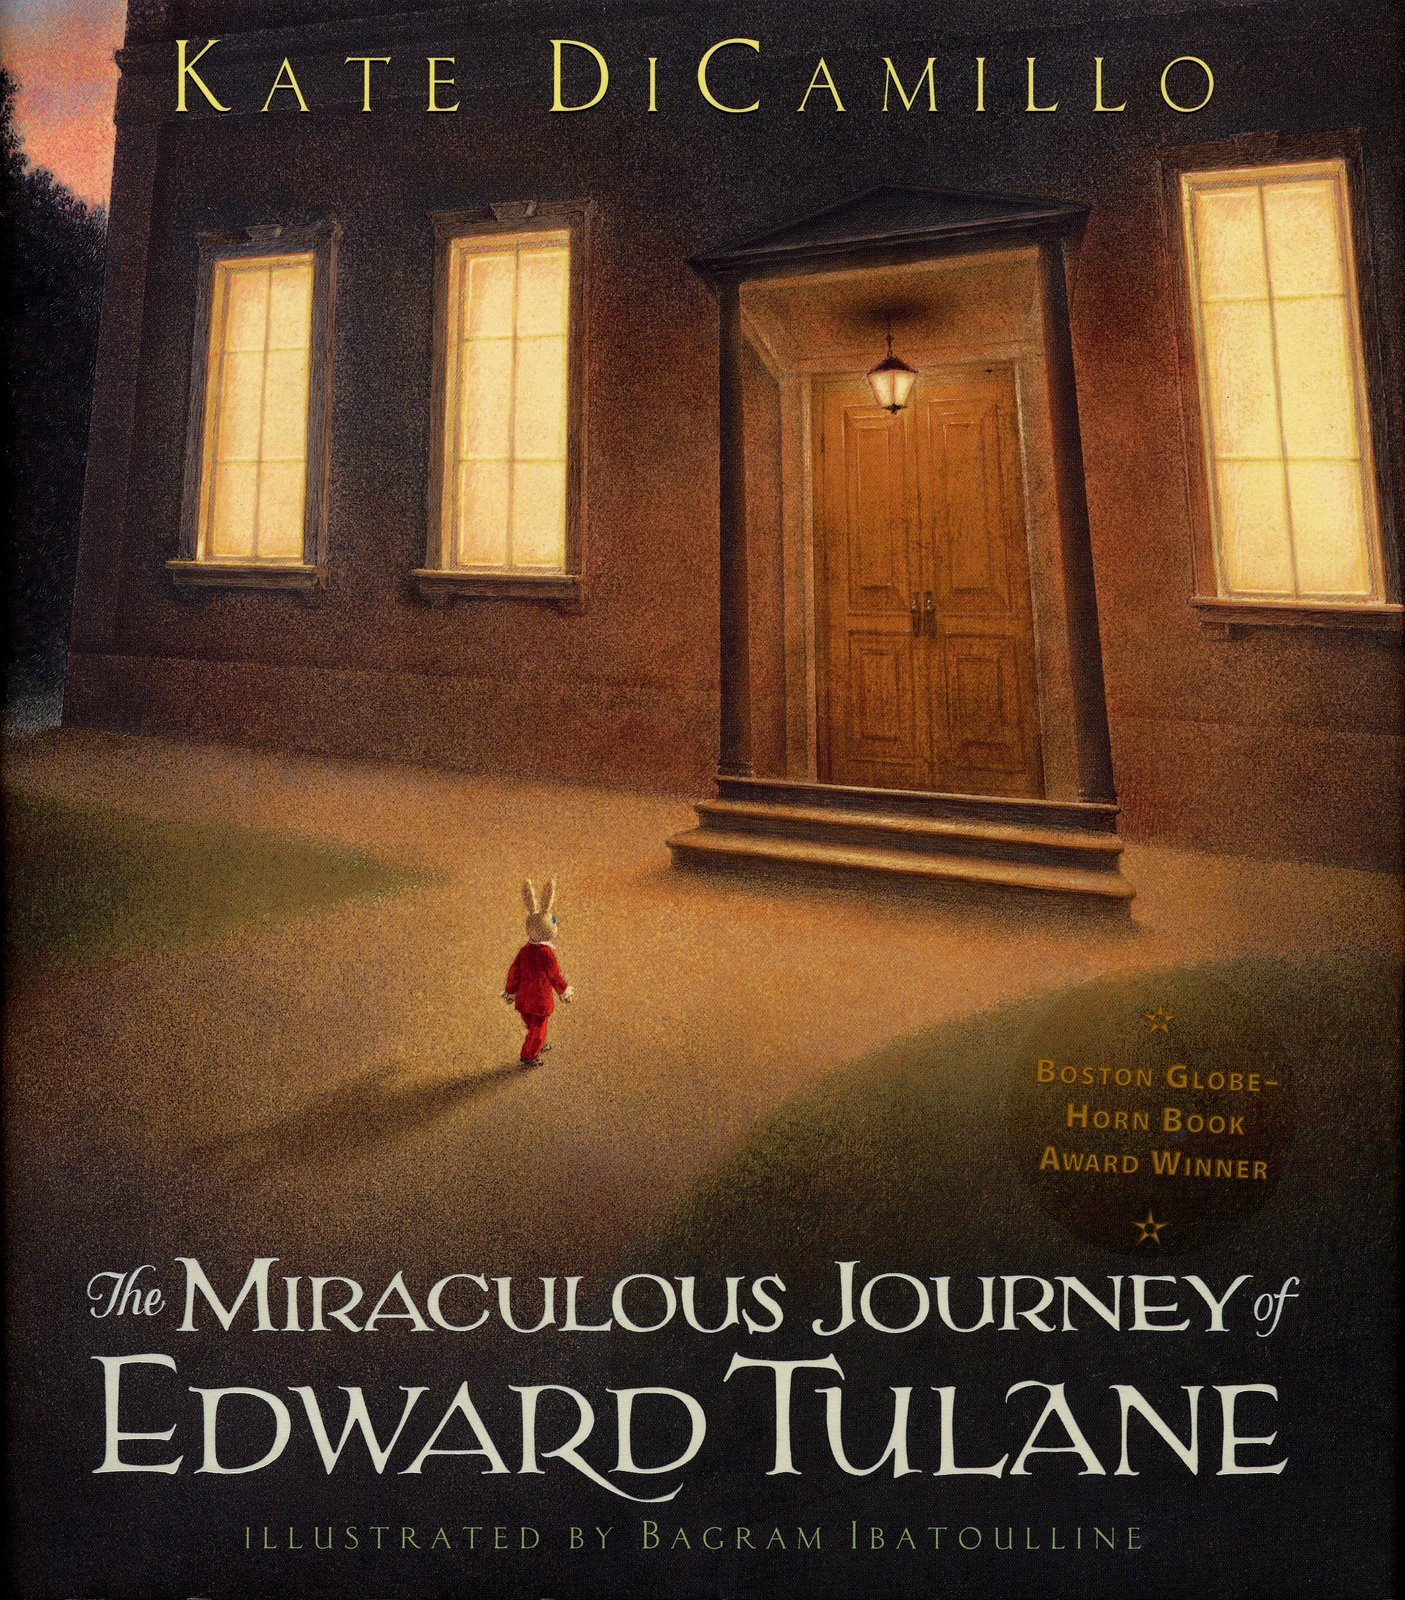 https://i2.wp.com/blogs.slj.com/afuse8production/files/2012/05/edward-tulane.jpg